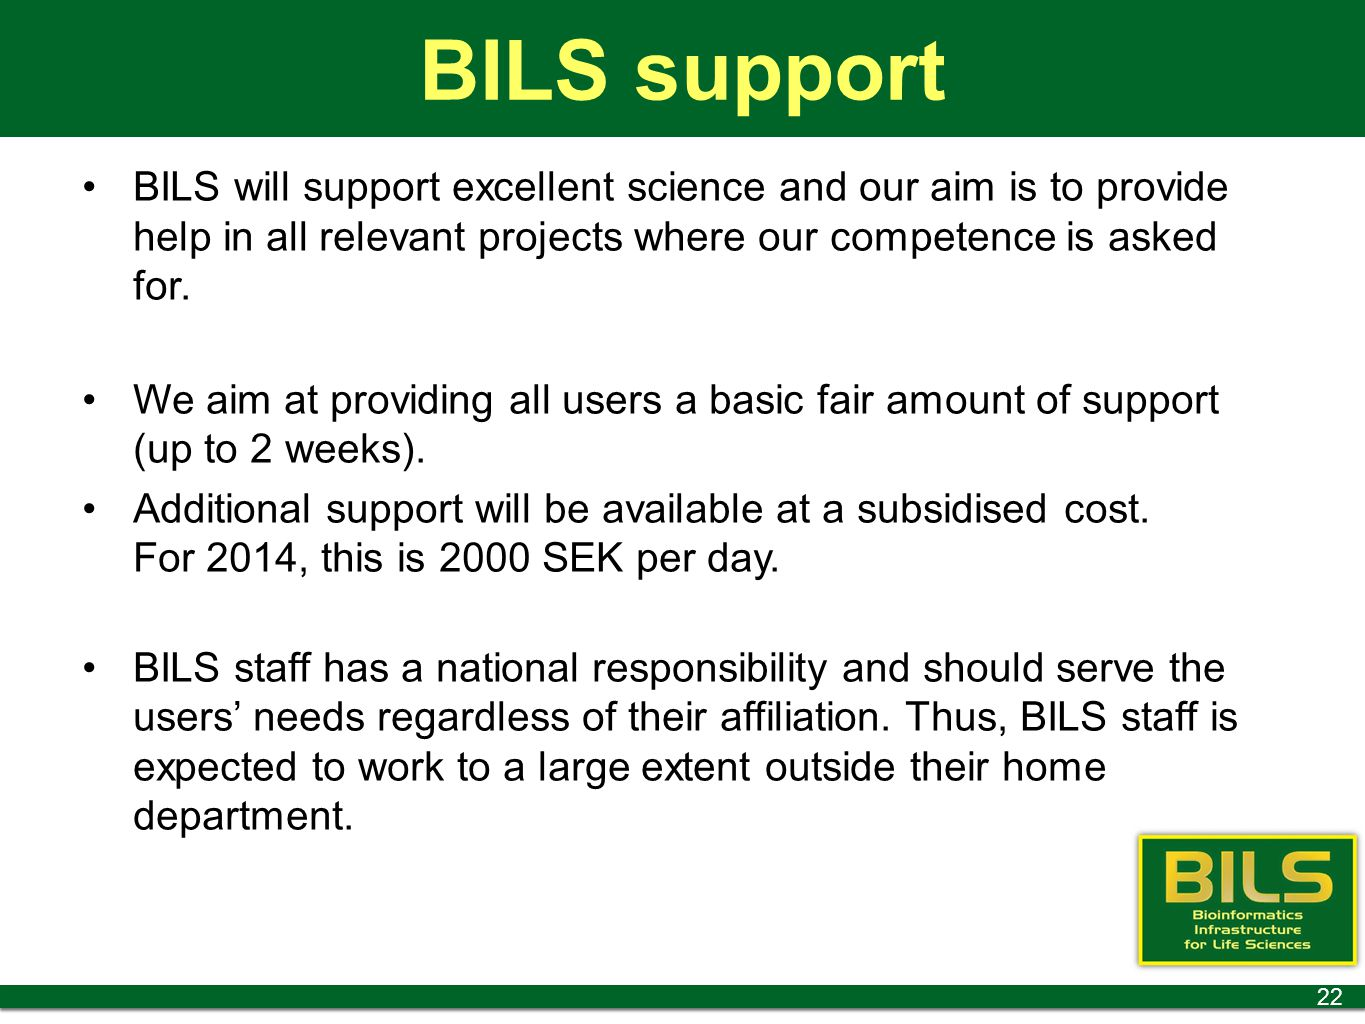 BILS support BILS will support excellent science and our aim is to provide help in all relevant projects where our competence is asked for. We aim at